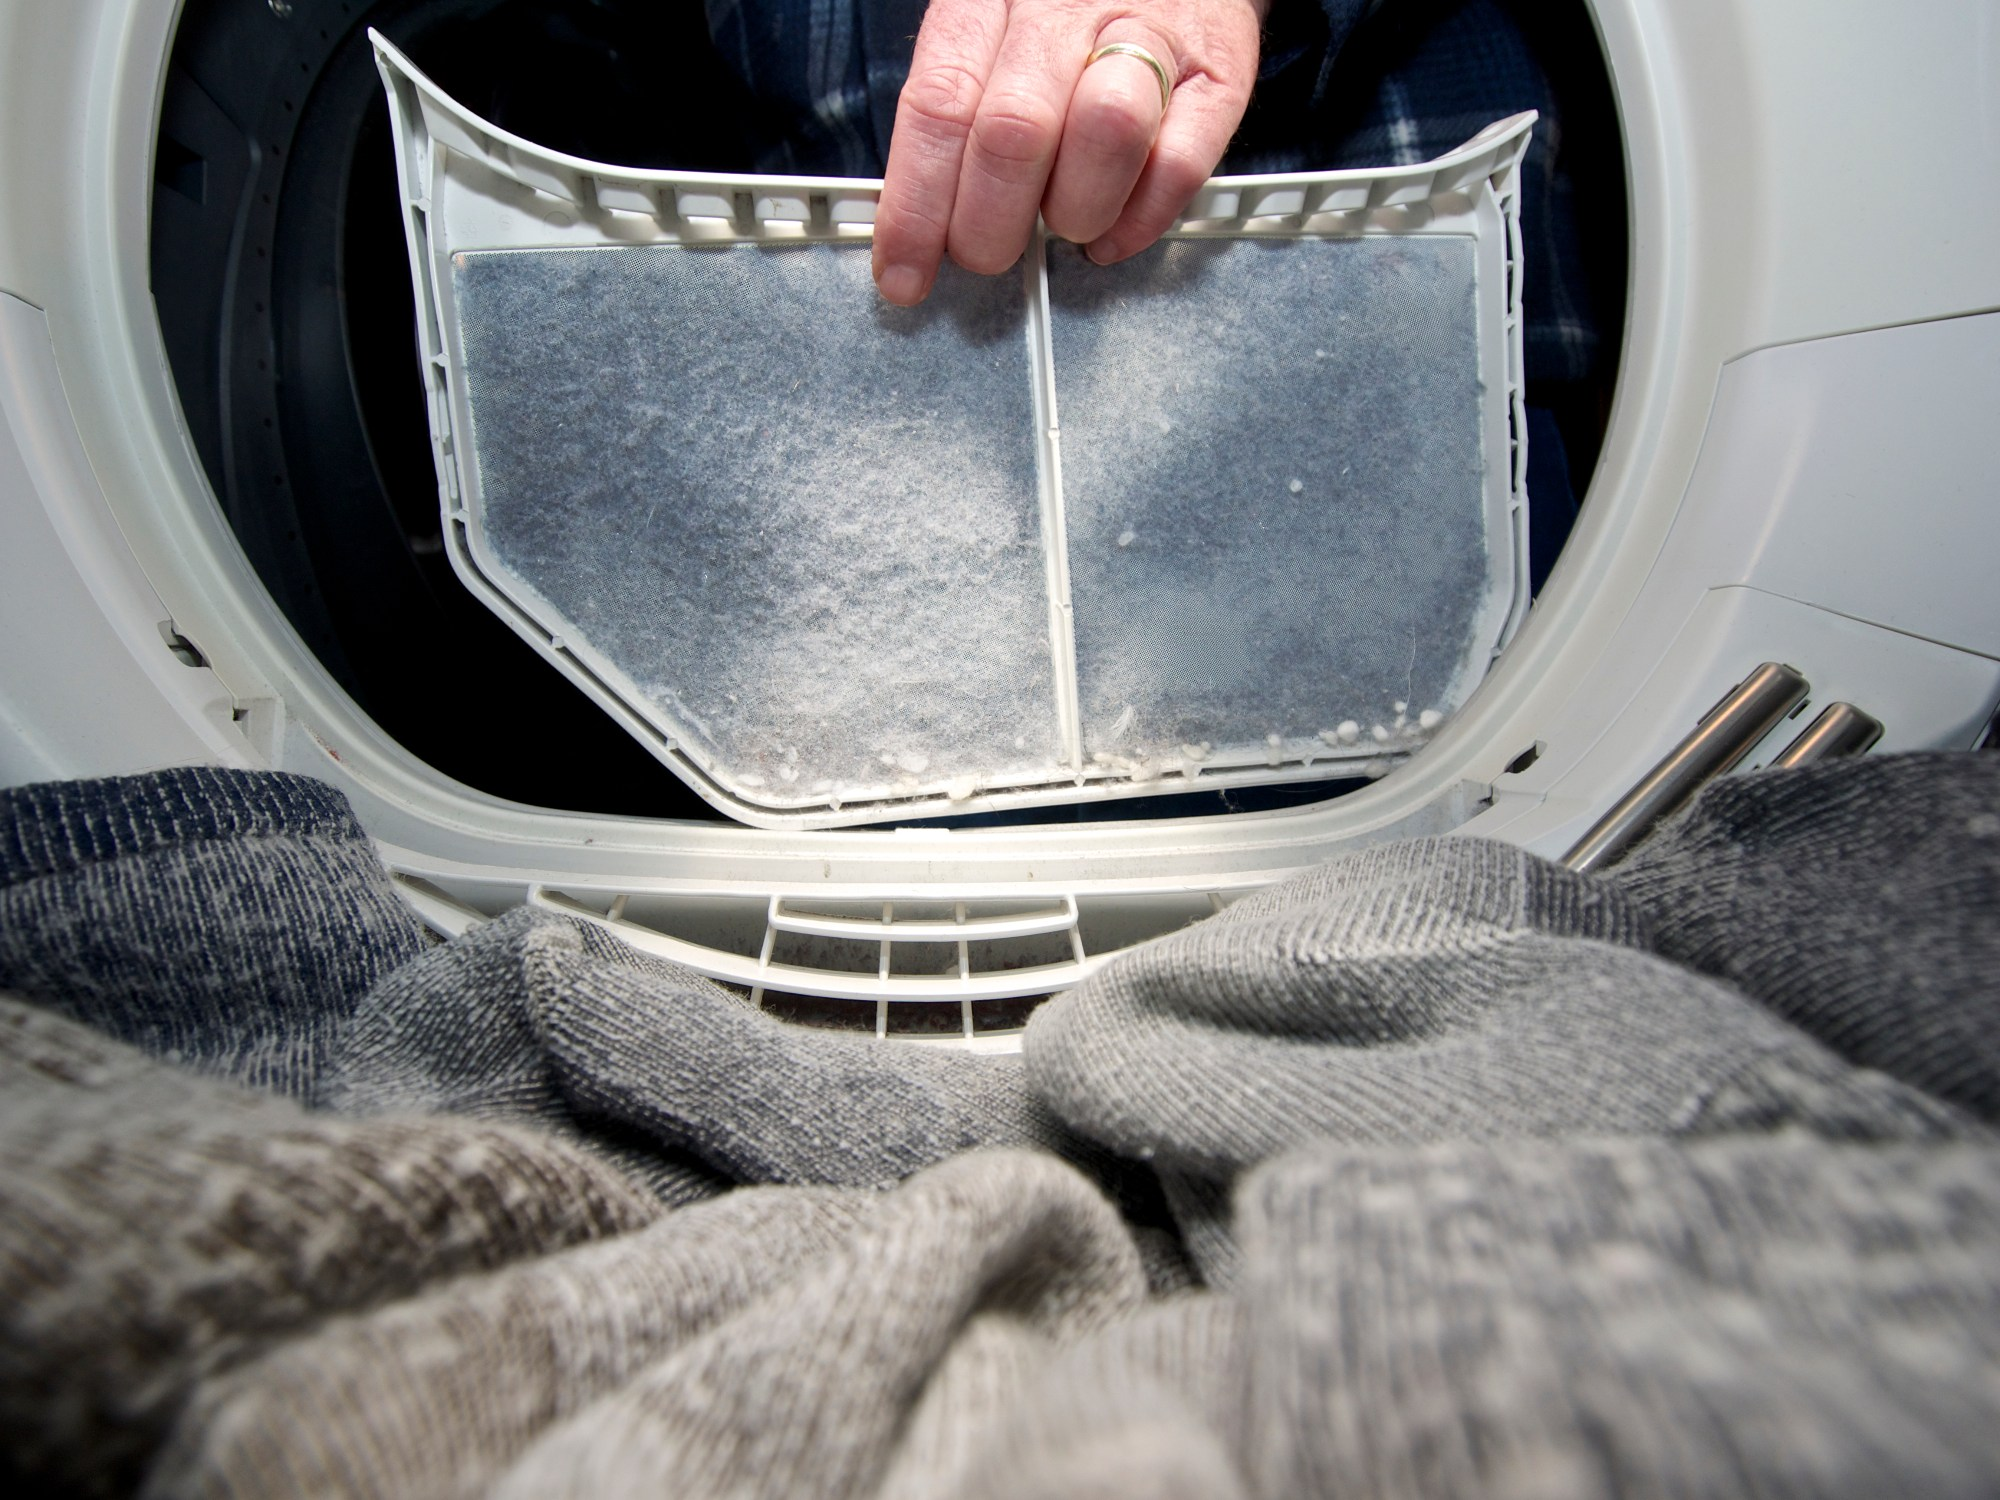 hight resolution of how to fix a whirlpool dryer that blows cold air